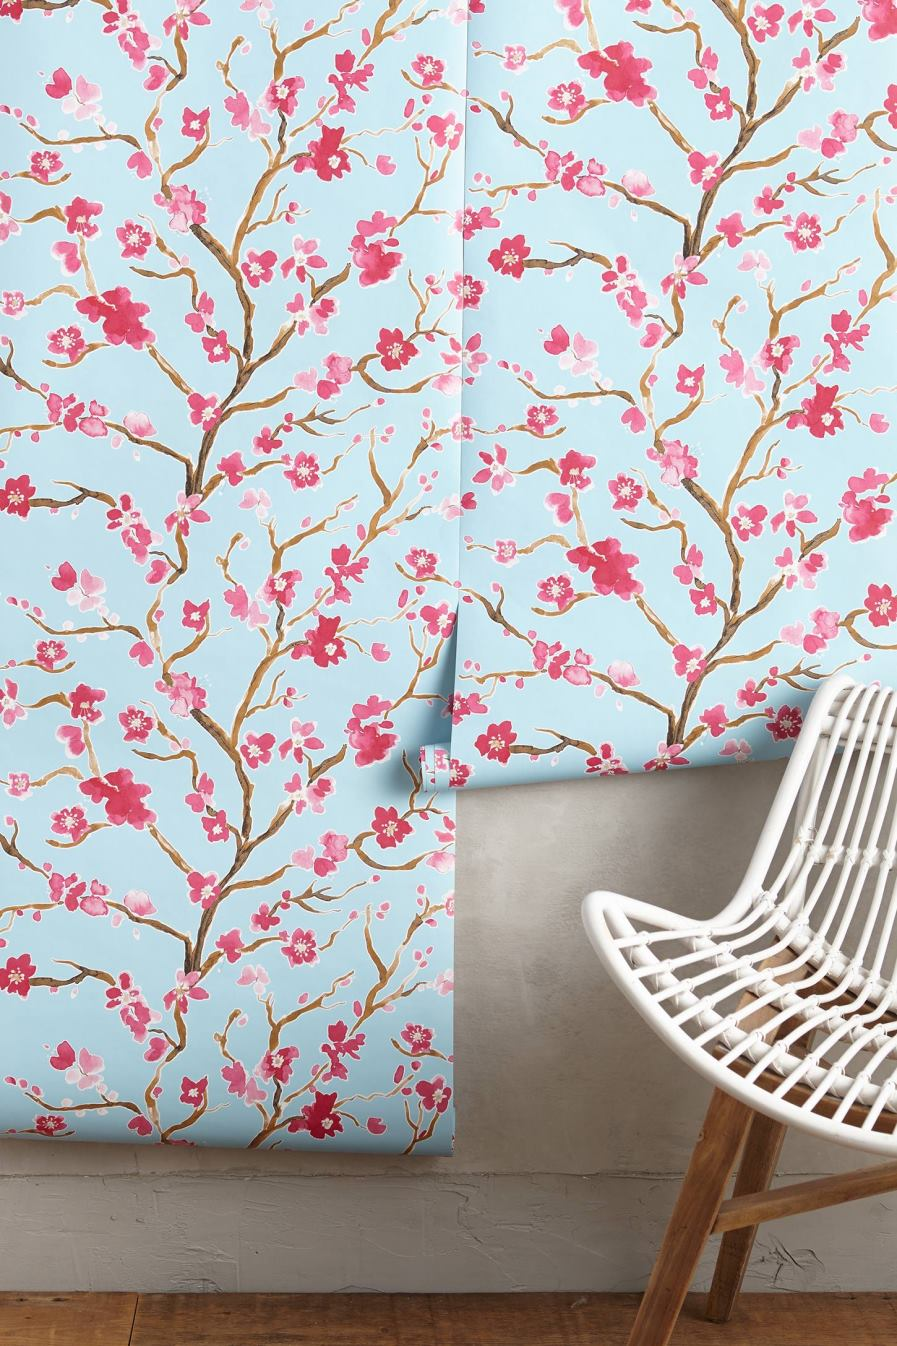 Cherry blossom wallpaper from Anthropologie The Beauty of Cherry Blossom Wallpaper